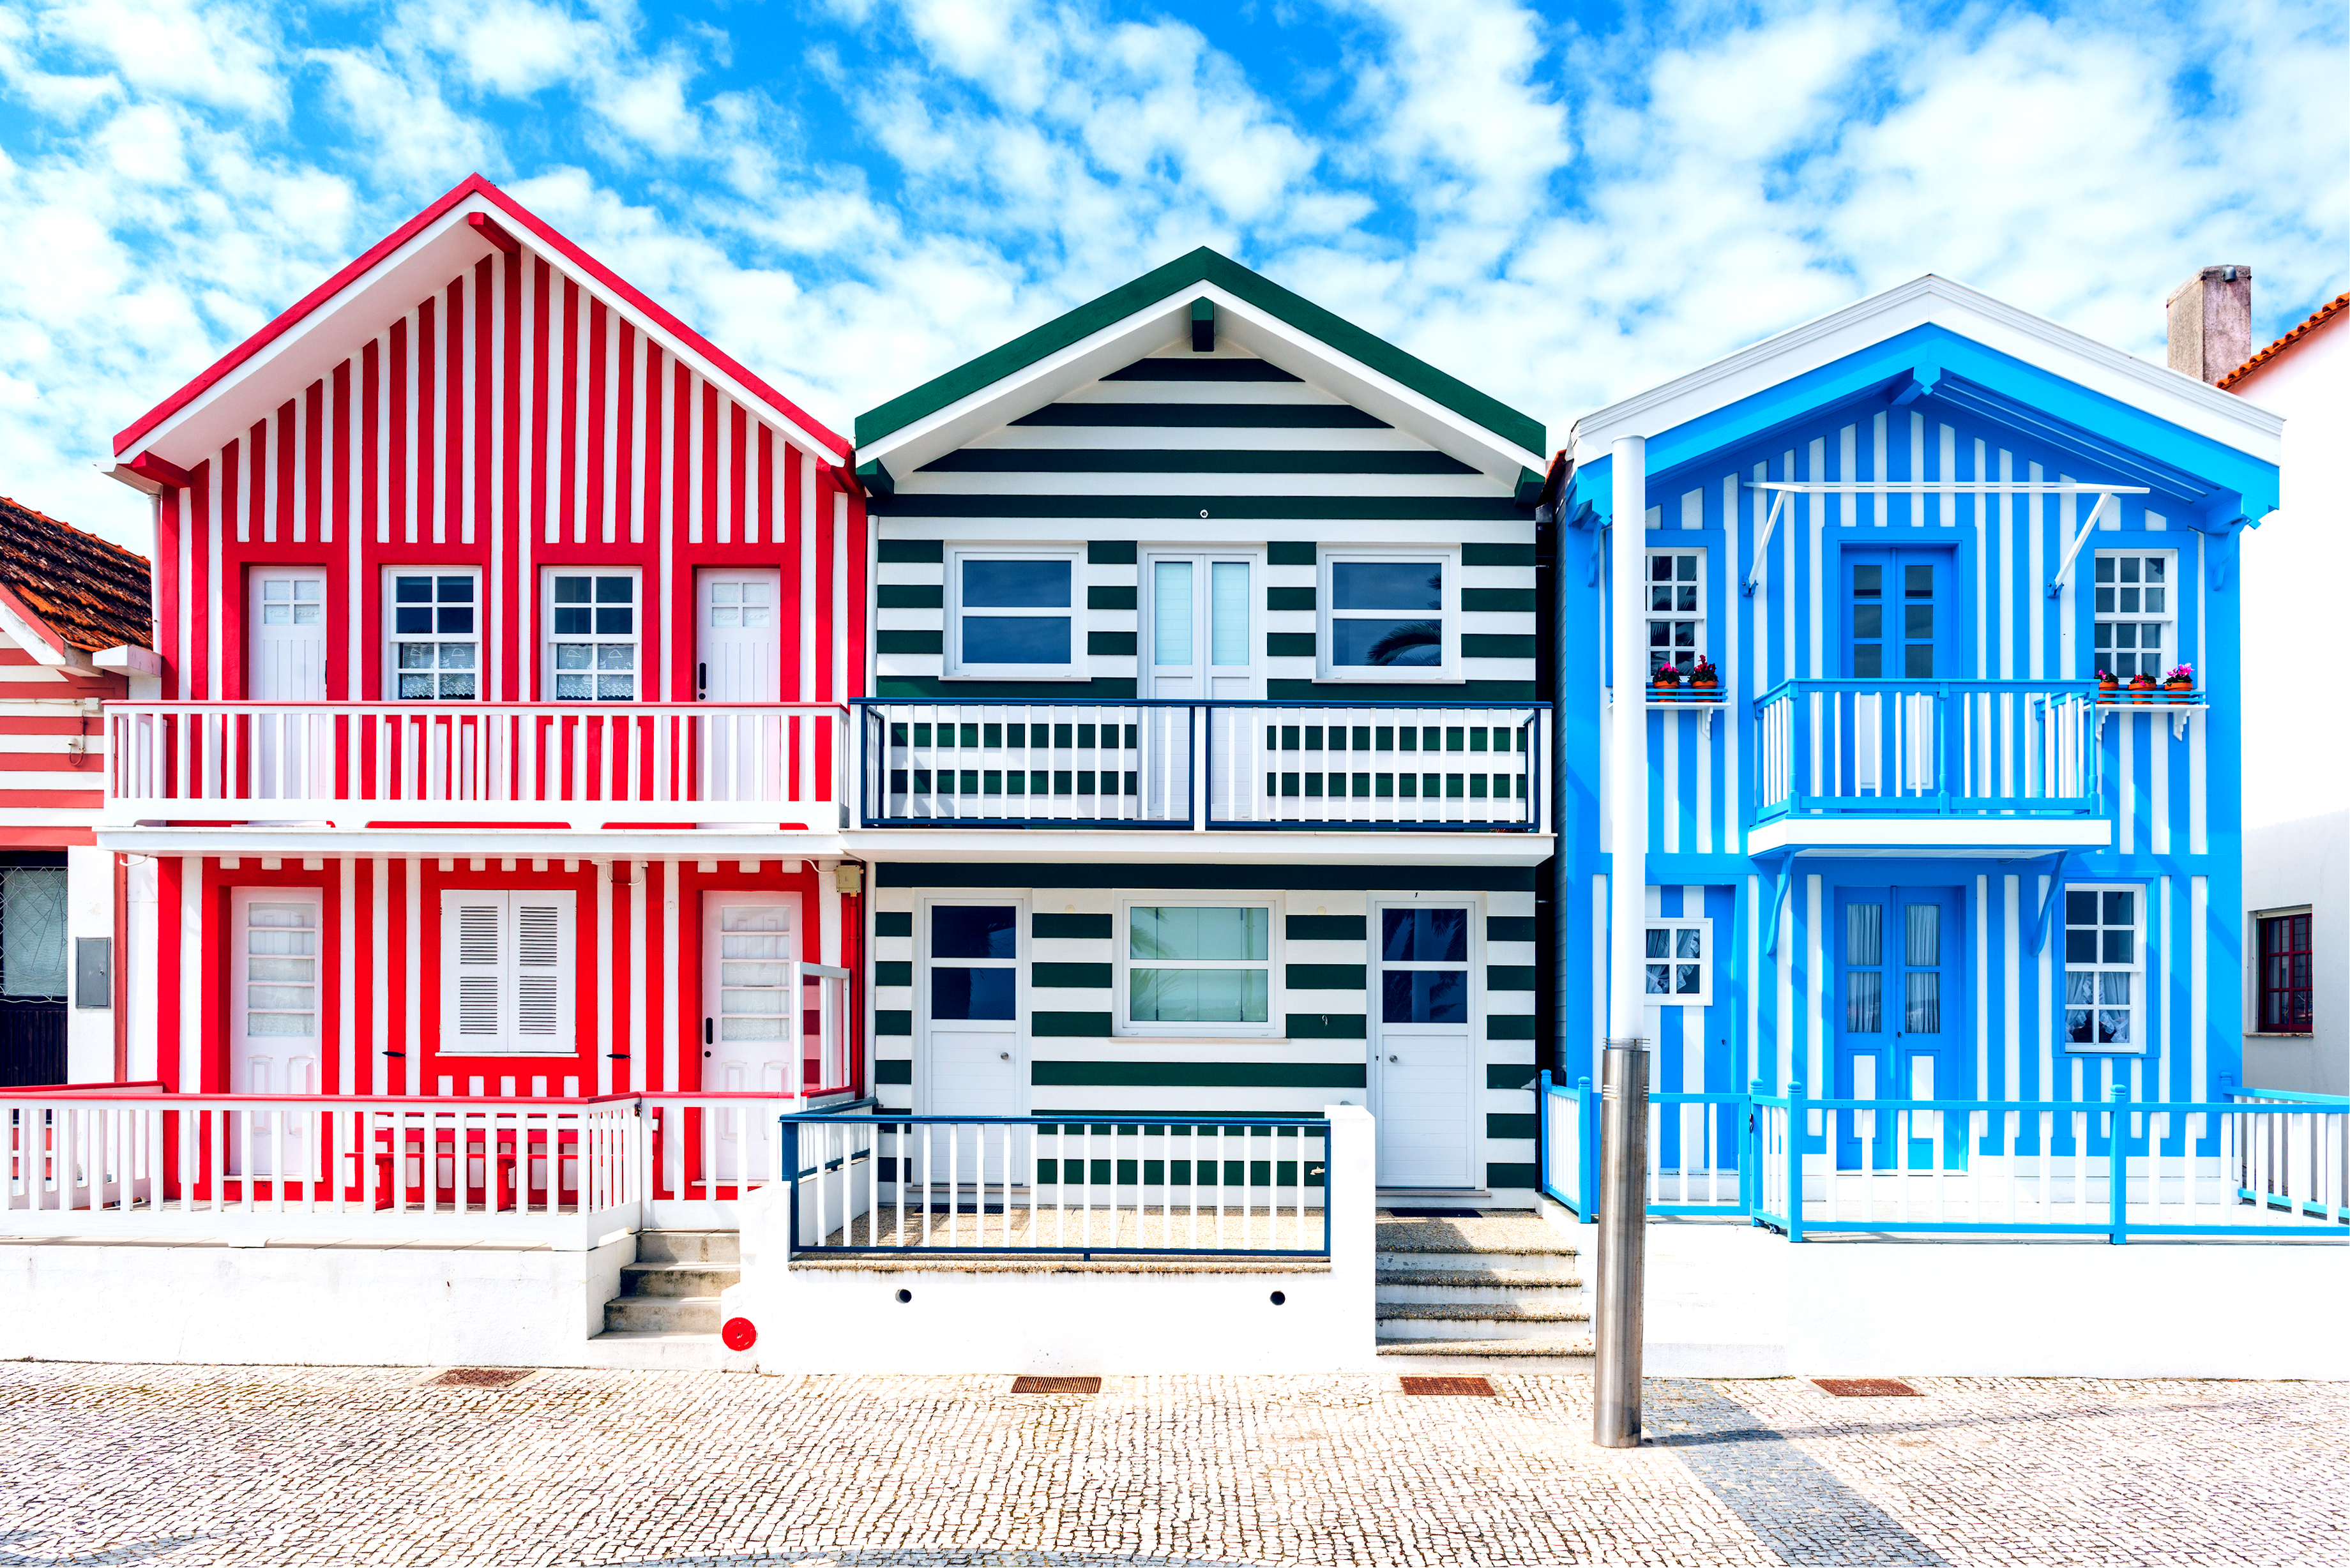 Casitas de colores en Costa Nova - Portugal